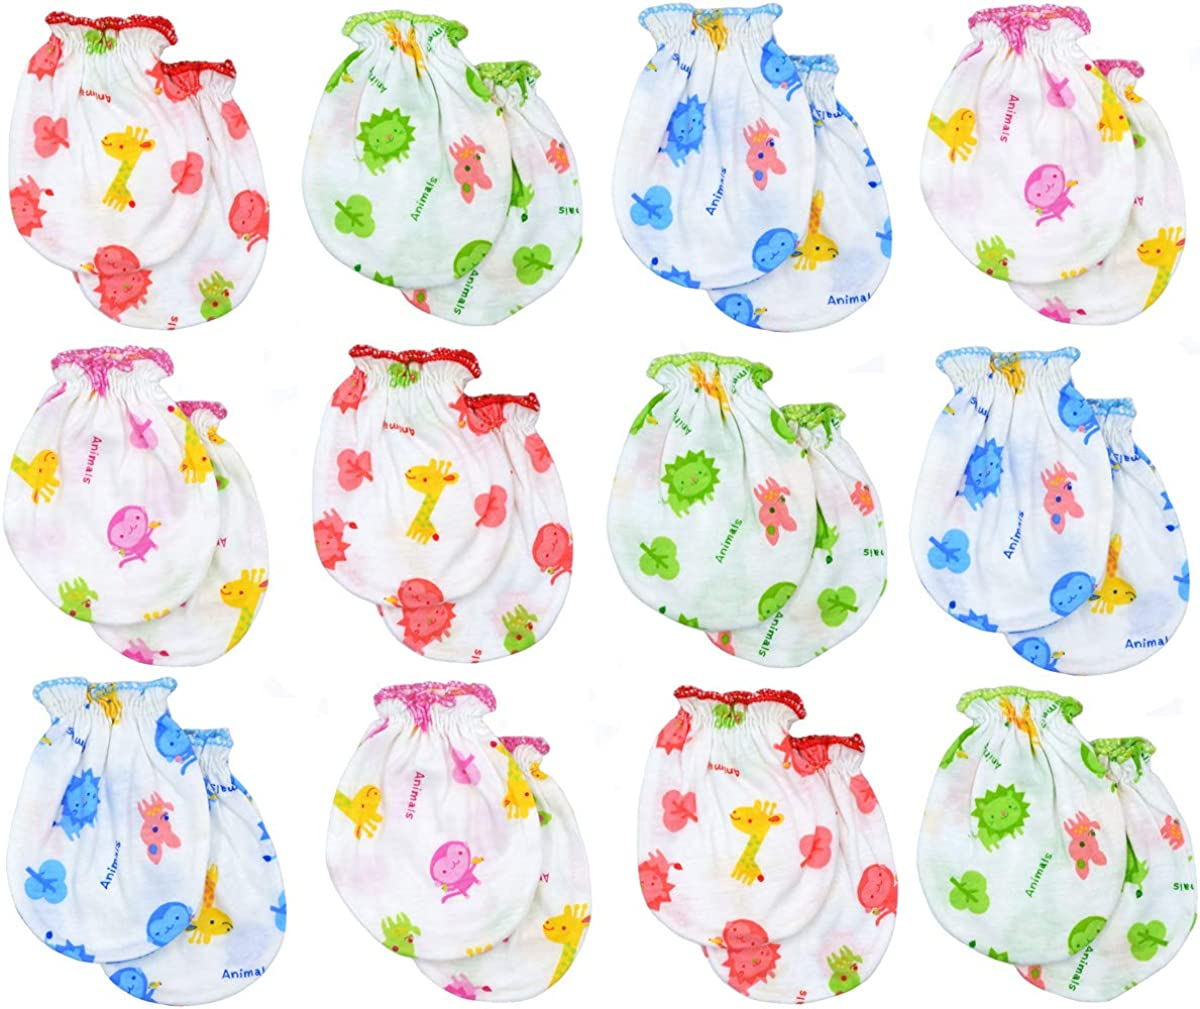 Liwely 12 Pairs Baby No Scratch Assorted Mittens, 100% Cotton, For 0-6 Months Boys Girls, Assorted Set